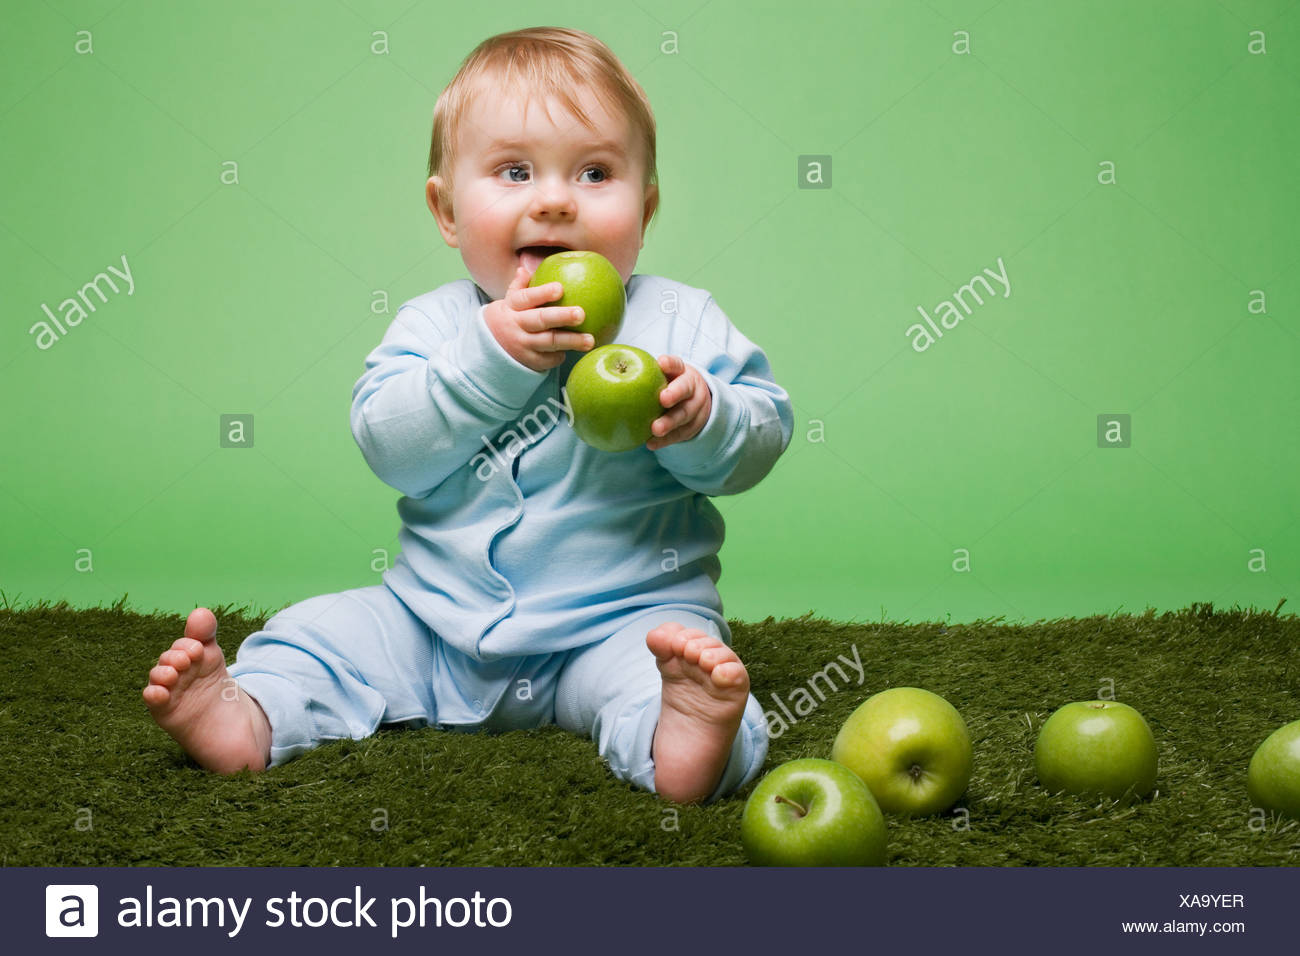 Baby boy eating apples - Stock Image